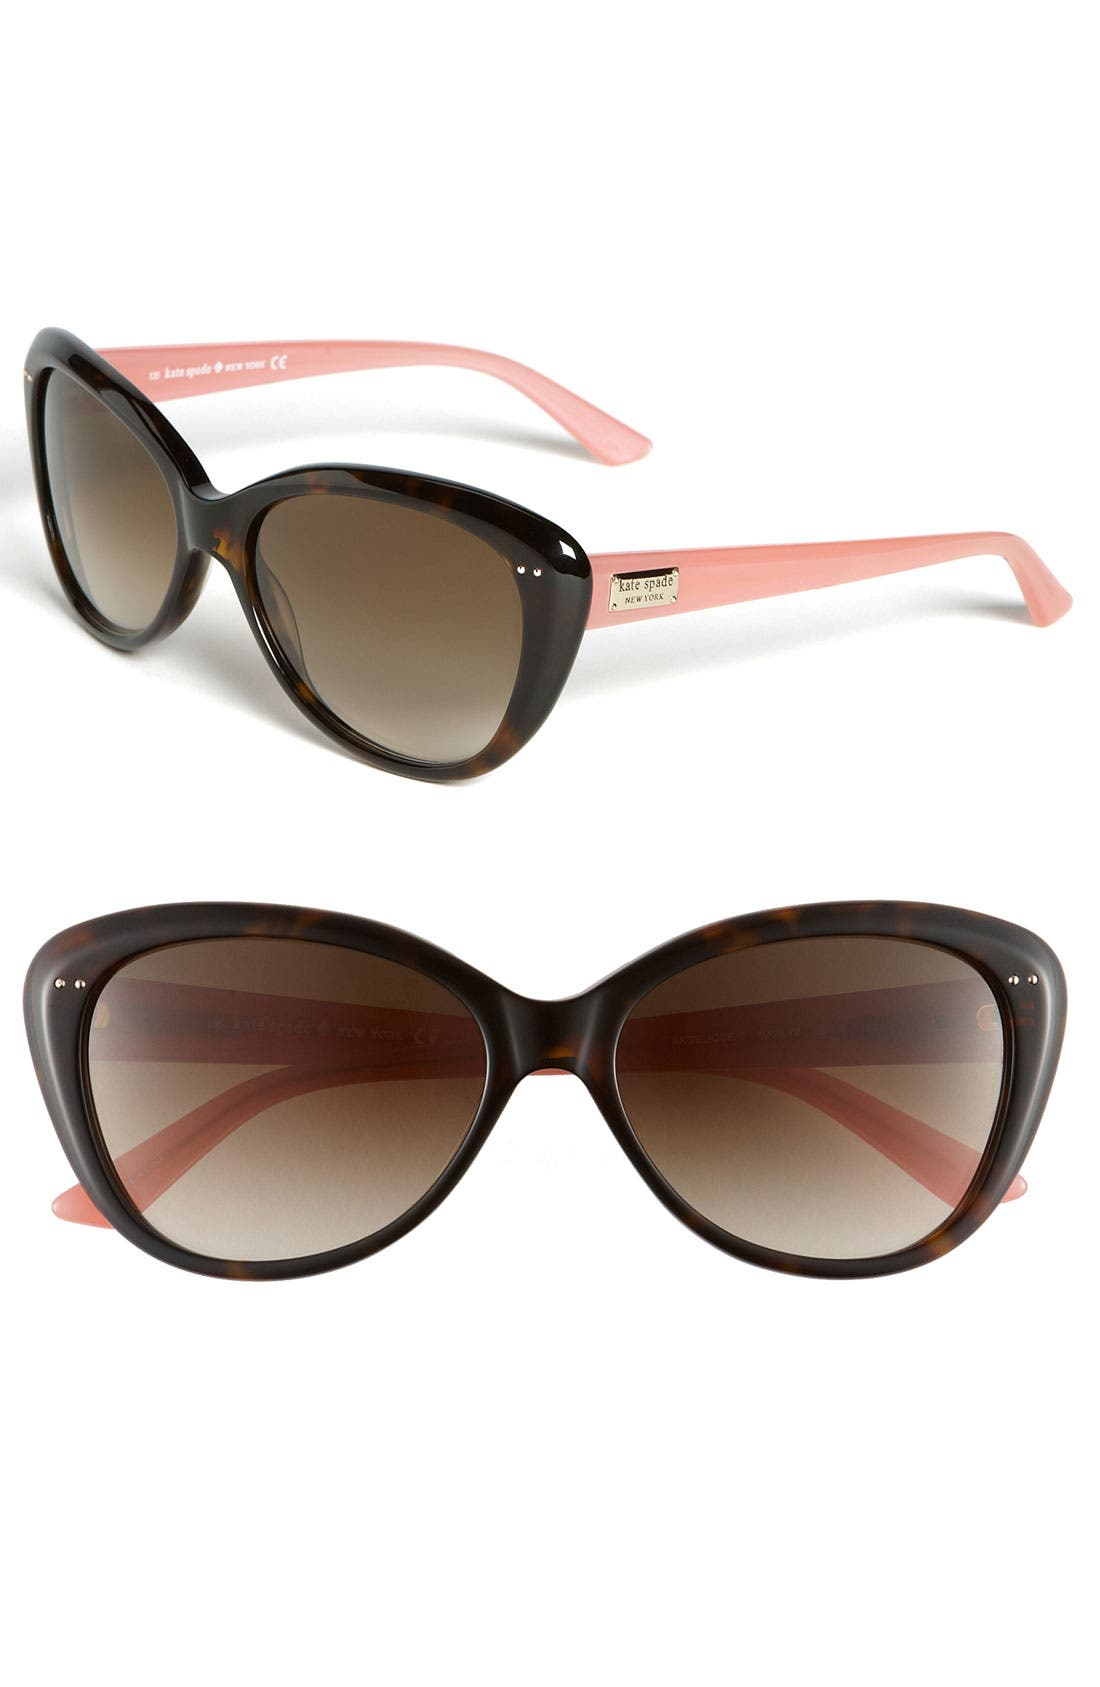 Alternate Image 1 Selected - kate spade new york 'angelique' 55mm retro sunglasses